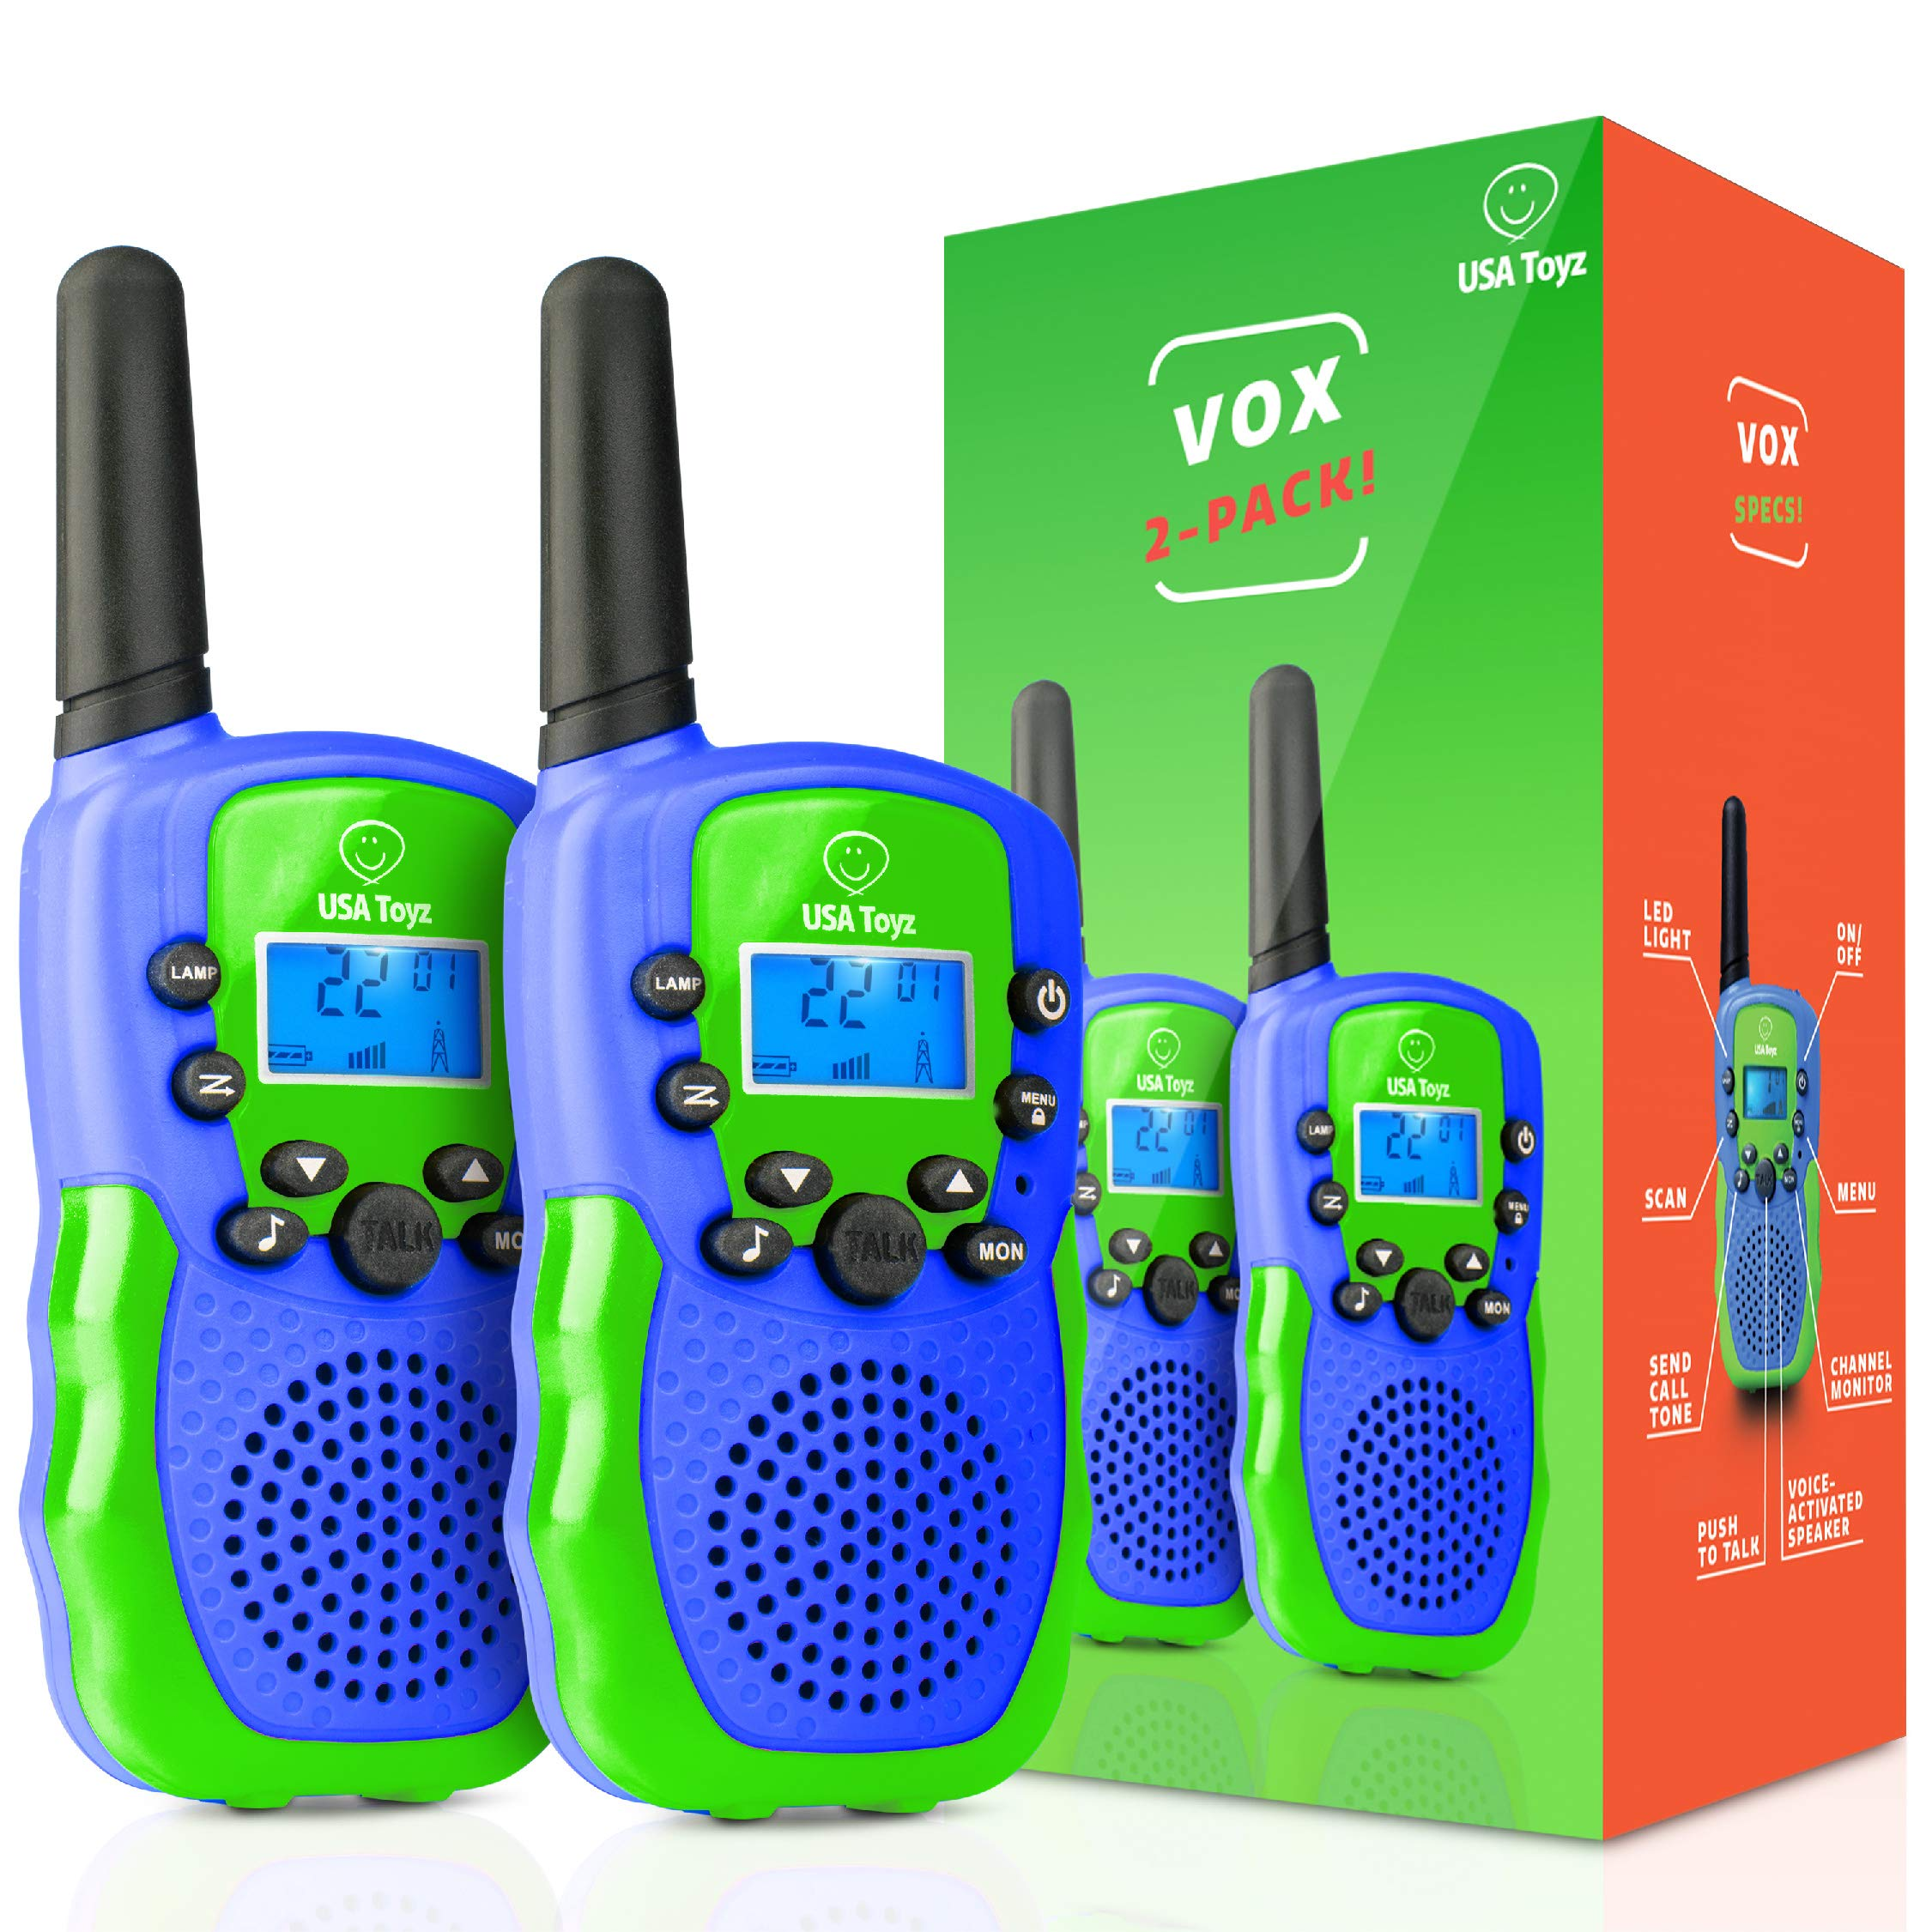 USA Toyz Walkie Talkies for Kids Vox Box Kids Walkie Talkies for Boys Or Girls, Voice Activated Long Range Outdoor Toys Walkie Talkie Set (Blue/Green)